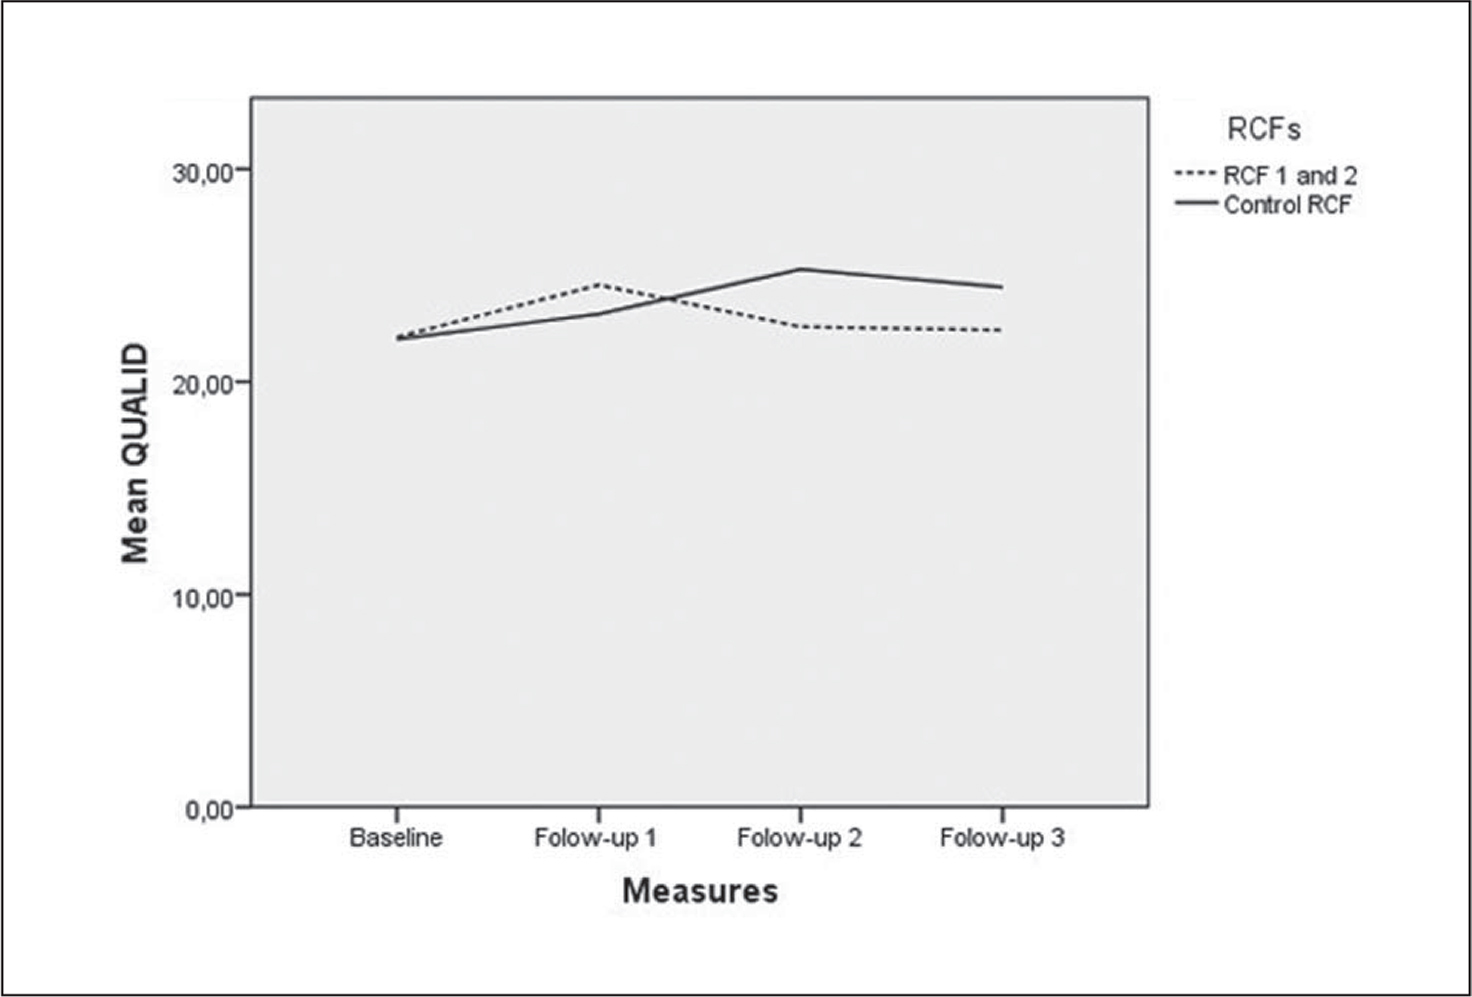 Comparison of residents' Quality of Life in Late-Stage Dementia (QUALID) scale scores at residential care facilities (RCFs) 1 and 2 and the control RCF between measures performed at baseline and during (Follow Up 1) and after (Follow Up 2 and 3) the intervention.